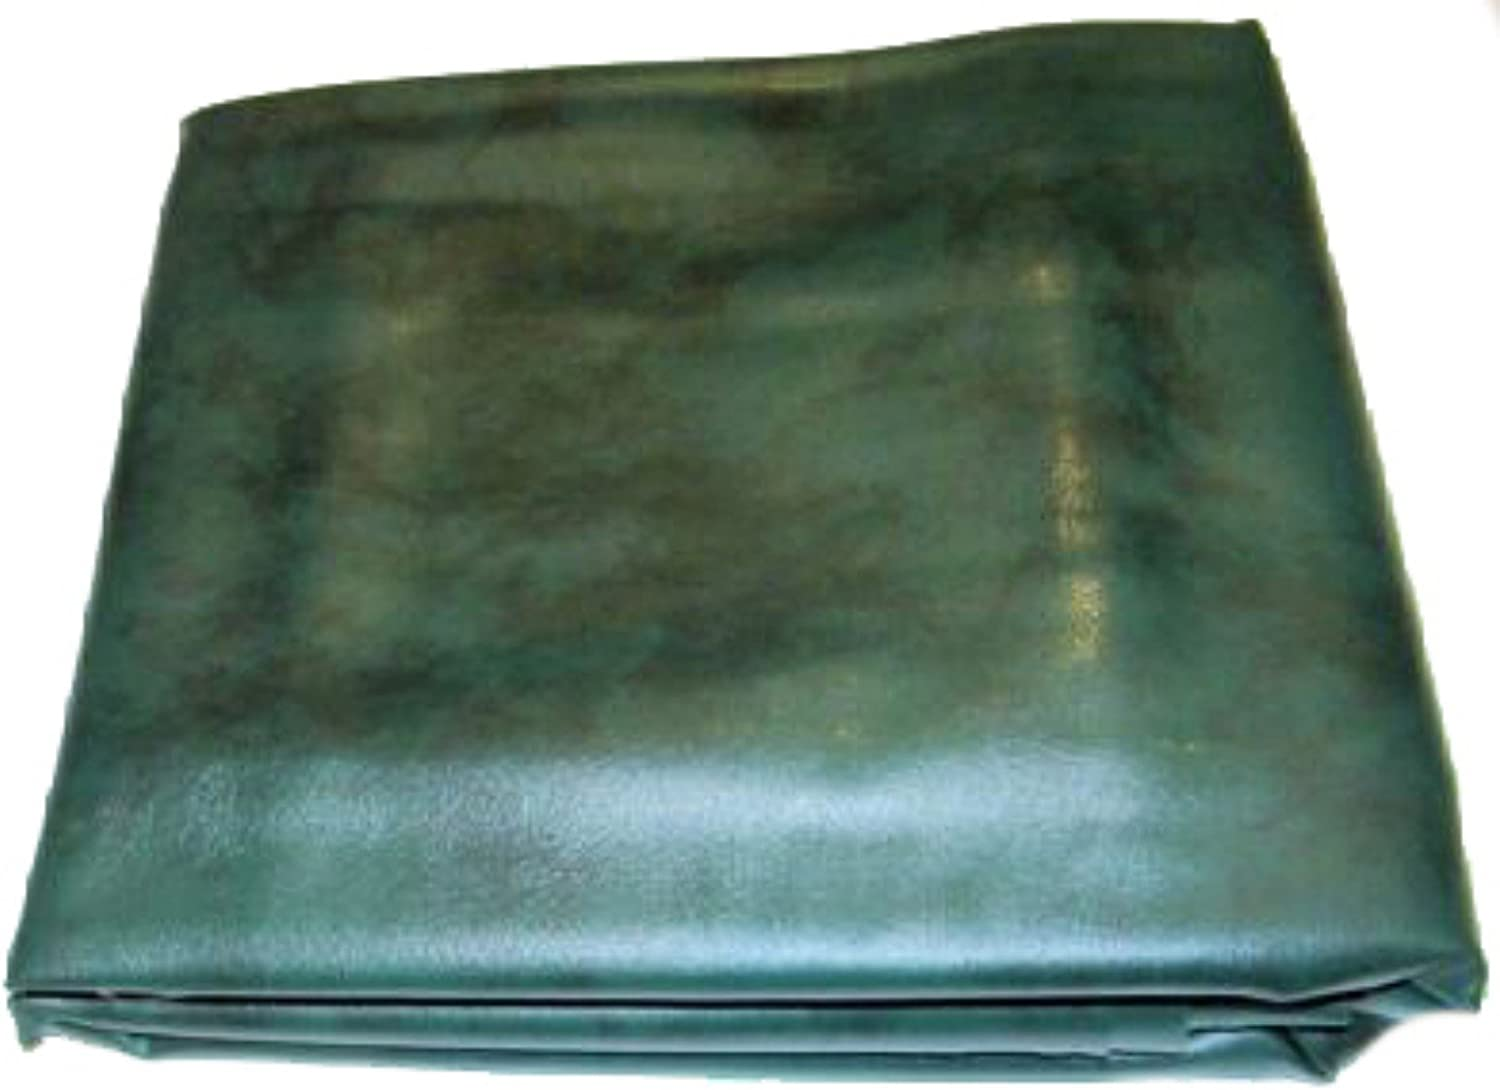 Iszy Billiards 7 Foot Heavy Duty Fitted Leatherette Pool Table Billiard Cover Several Colors to Choose From